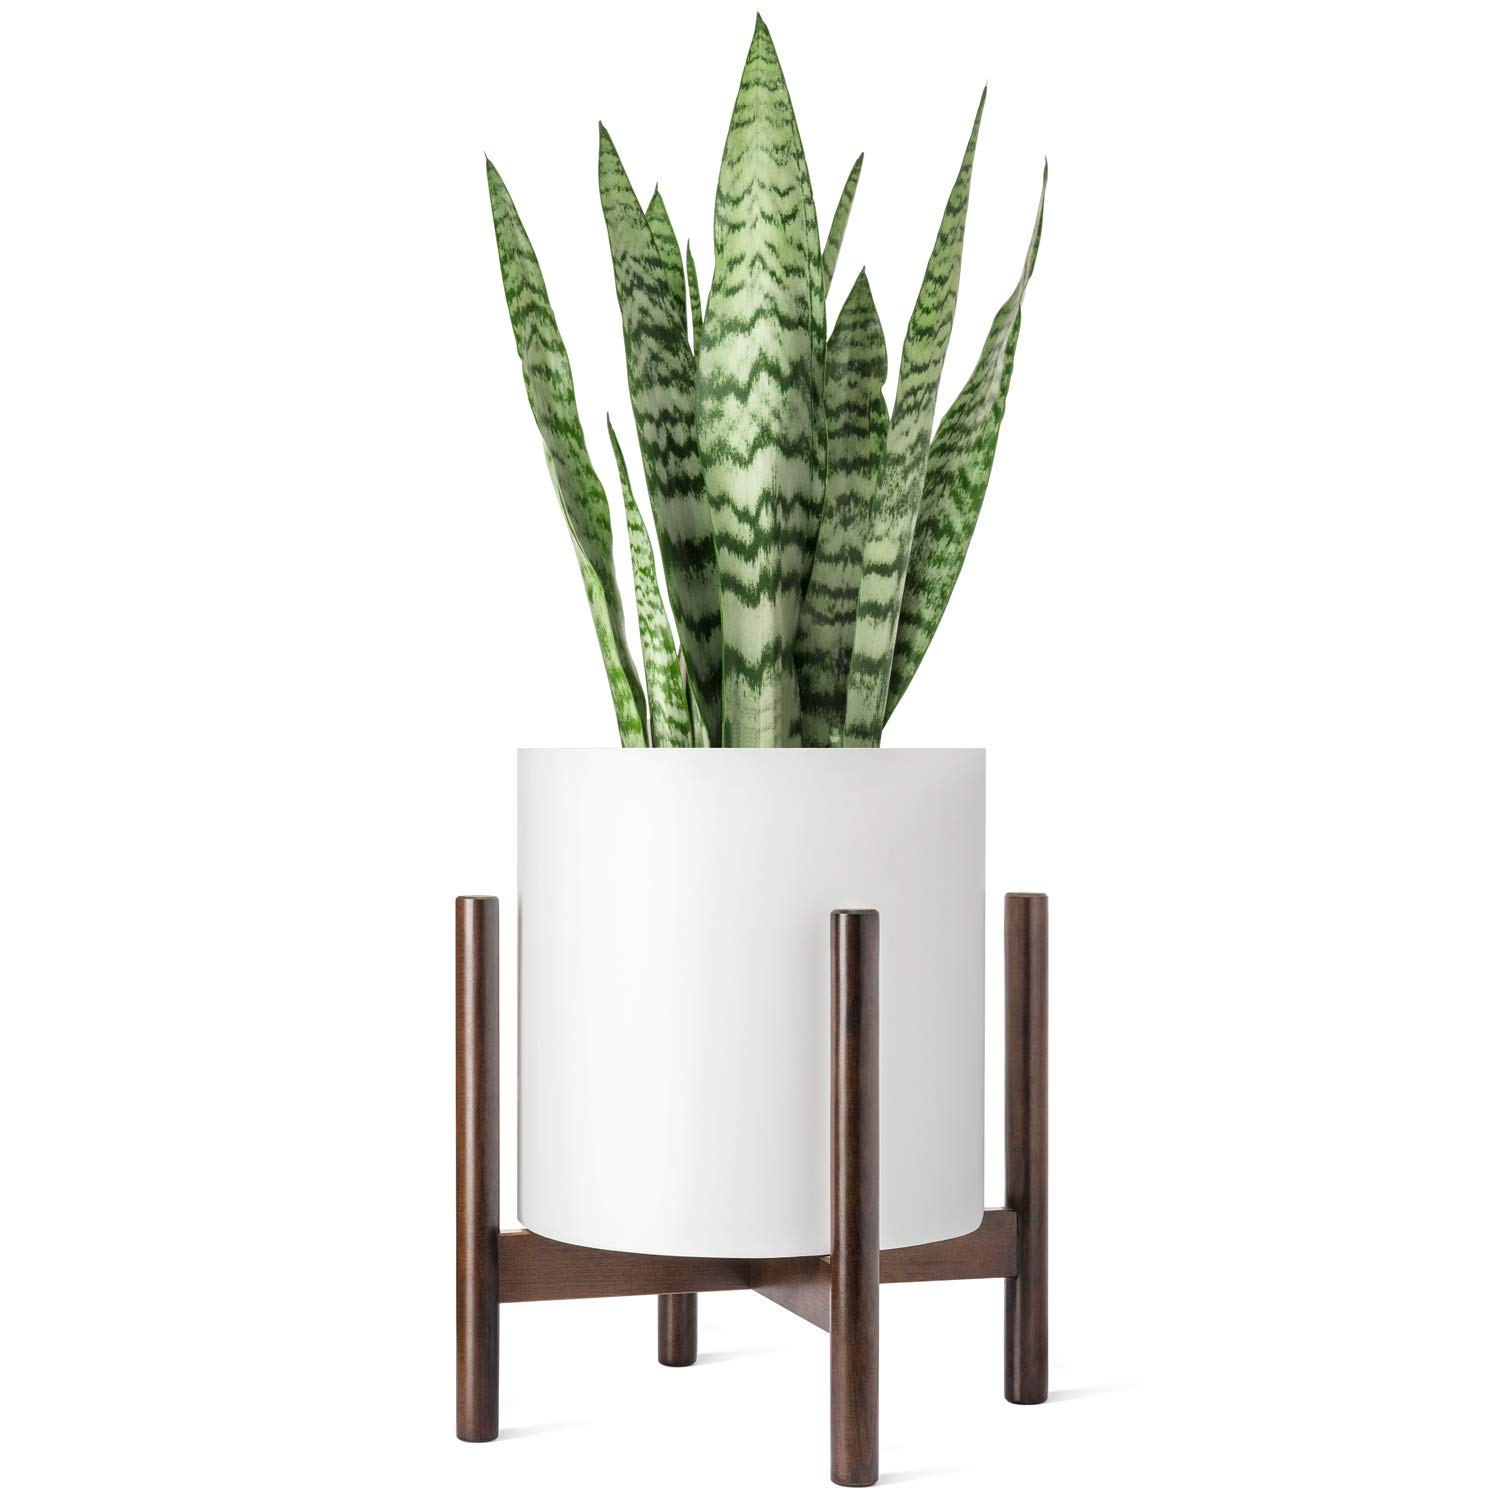 Mkono Plant Stand Mid Century Wood Flower Pot Holder Indoor (Pot NOT Included) Potted Rack Modern Home Decor, Up to 12 Inch Planter, Dark Brown